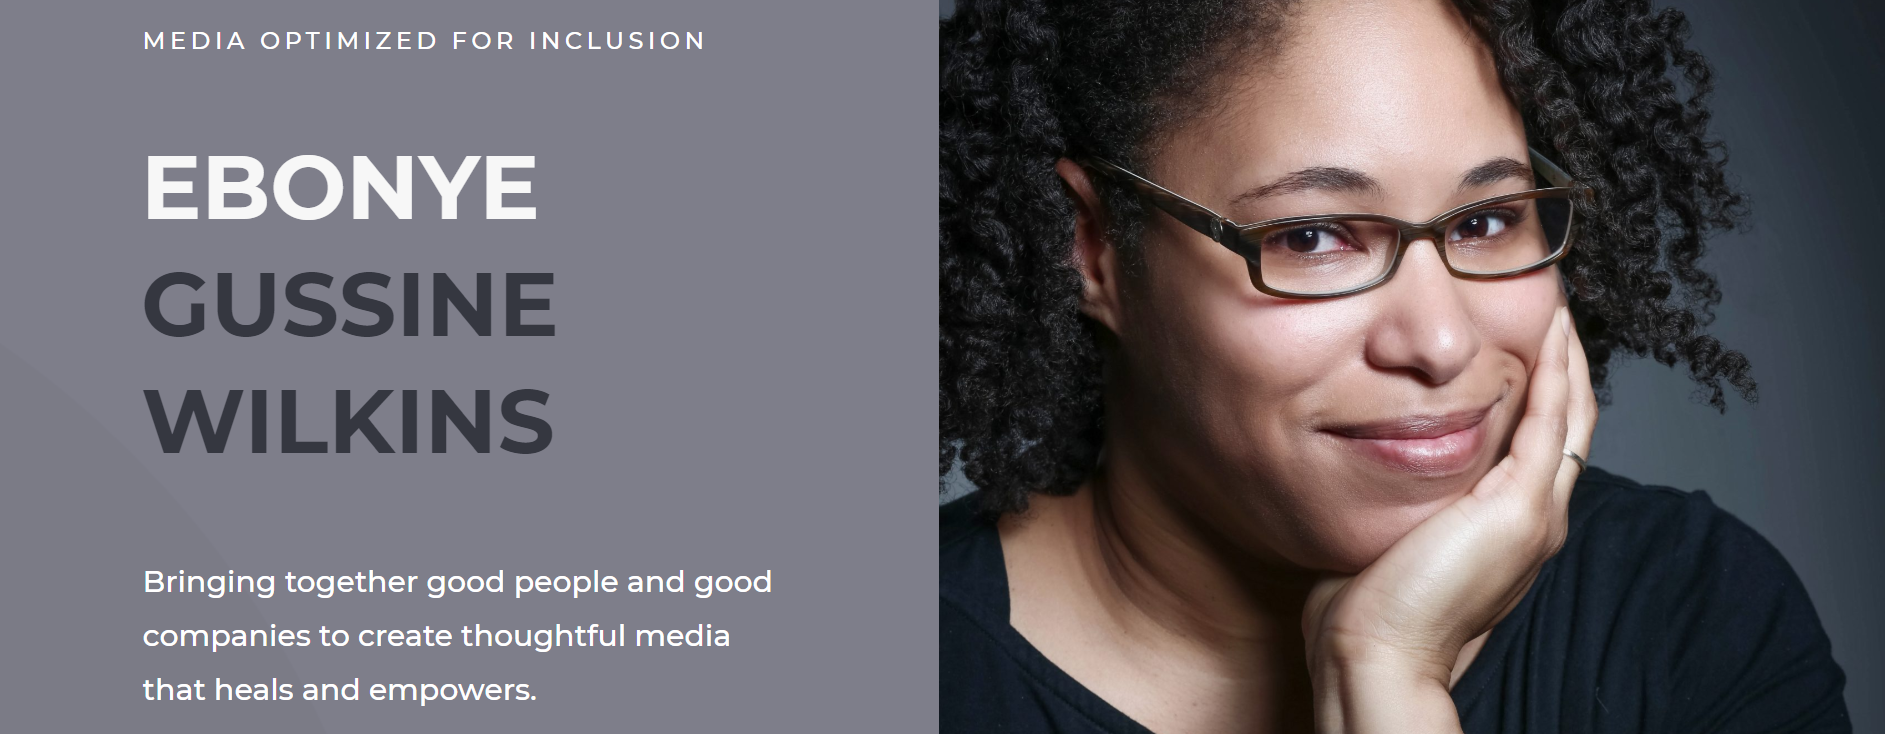 EGW Headshot plus Description: Media Optimized for Inclusion.<br /> Ebonye Gussine Wilkins: Bringing together good people and good companies to create thoughtful media that heals and empowers.